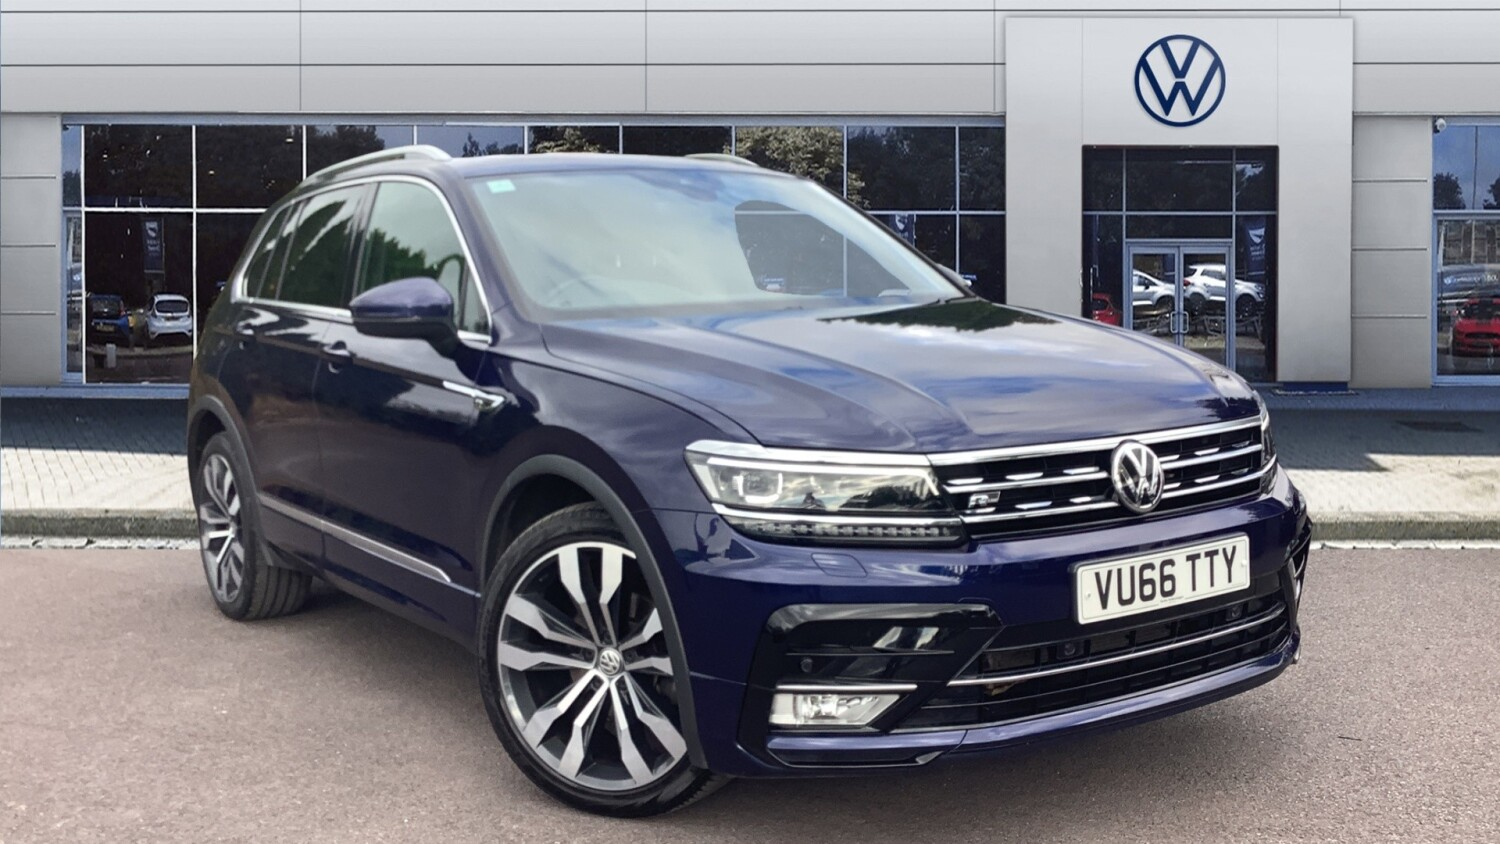 used volkswagen tiguan 2 0 tdi bmt 150 4motion r line 5dr. Black Bedroom Furniture Sets. Home Design Ideas